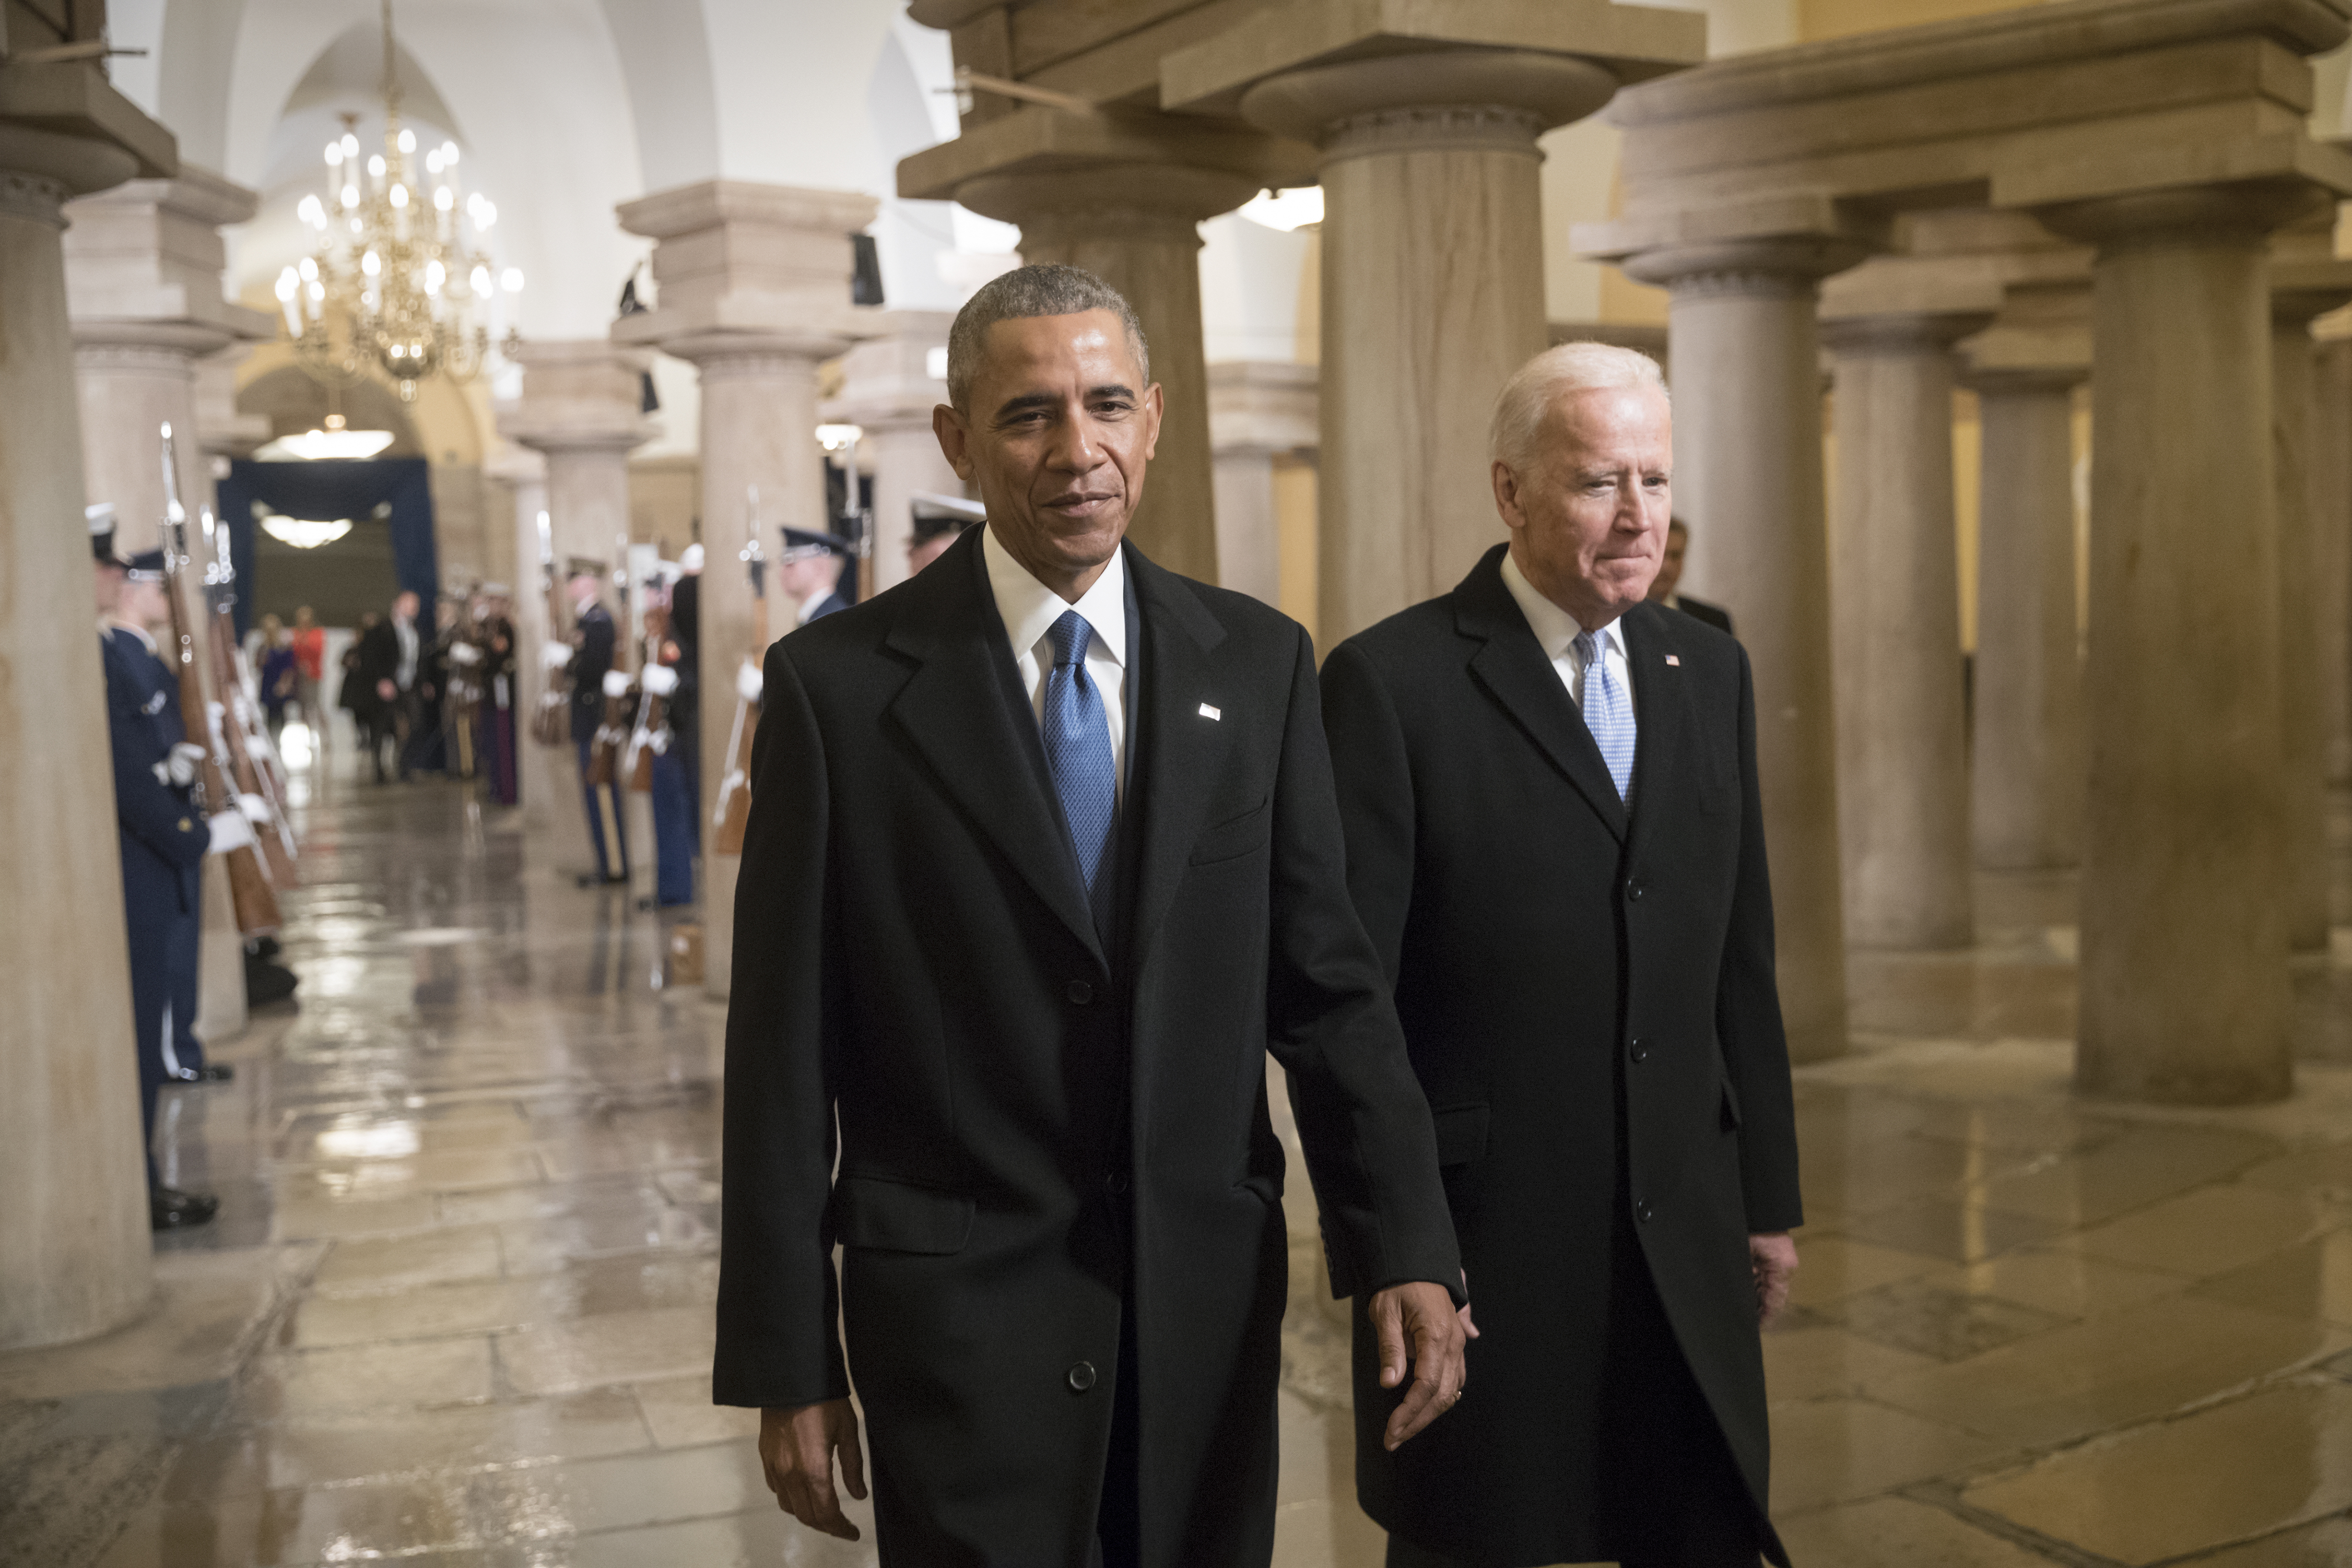 President Barack Obama and Vice President Joe Biden walk through the Crypt of the Capitol for Donald Trump's inauguration ceremony. (J. Scott Applewhite - Pool/Getty Images)